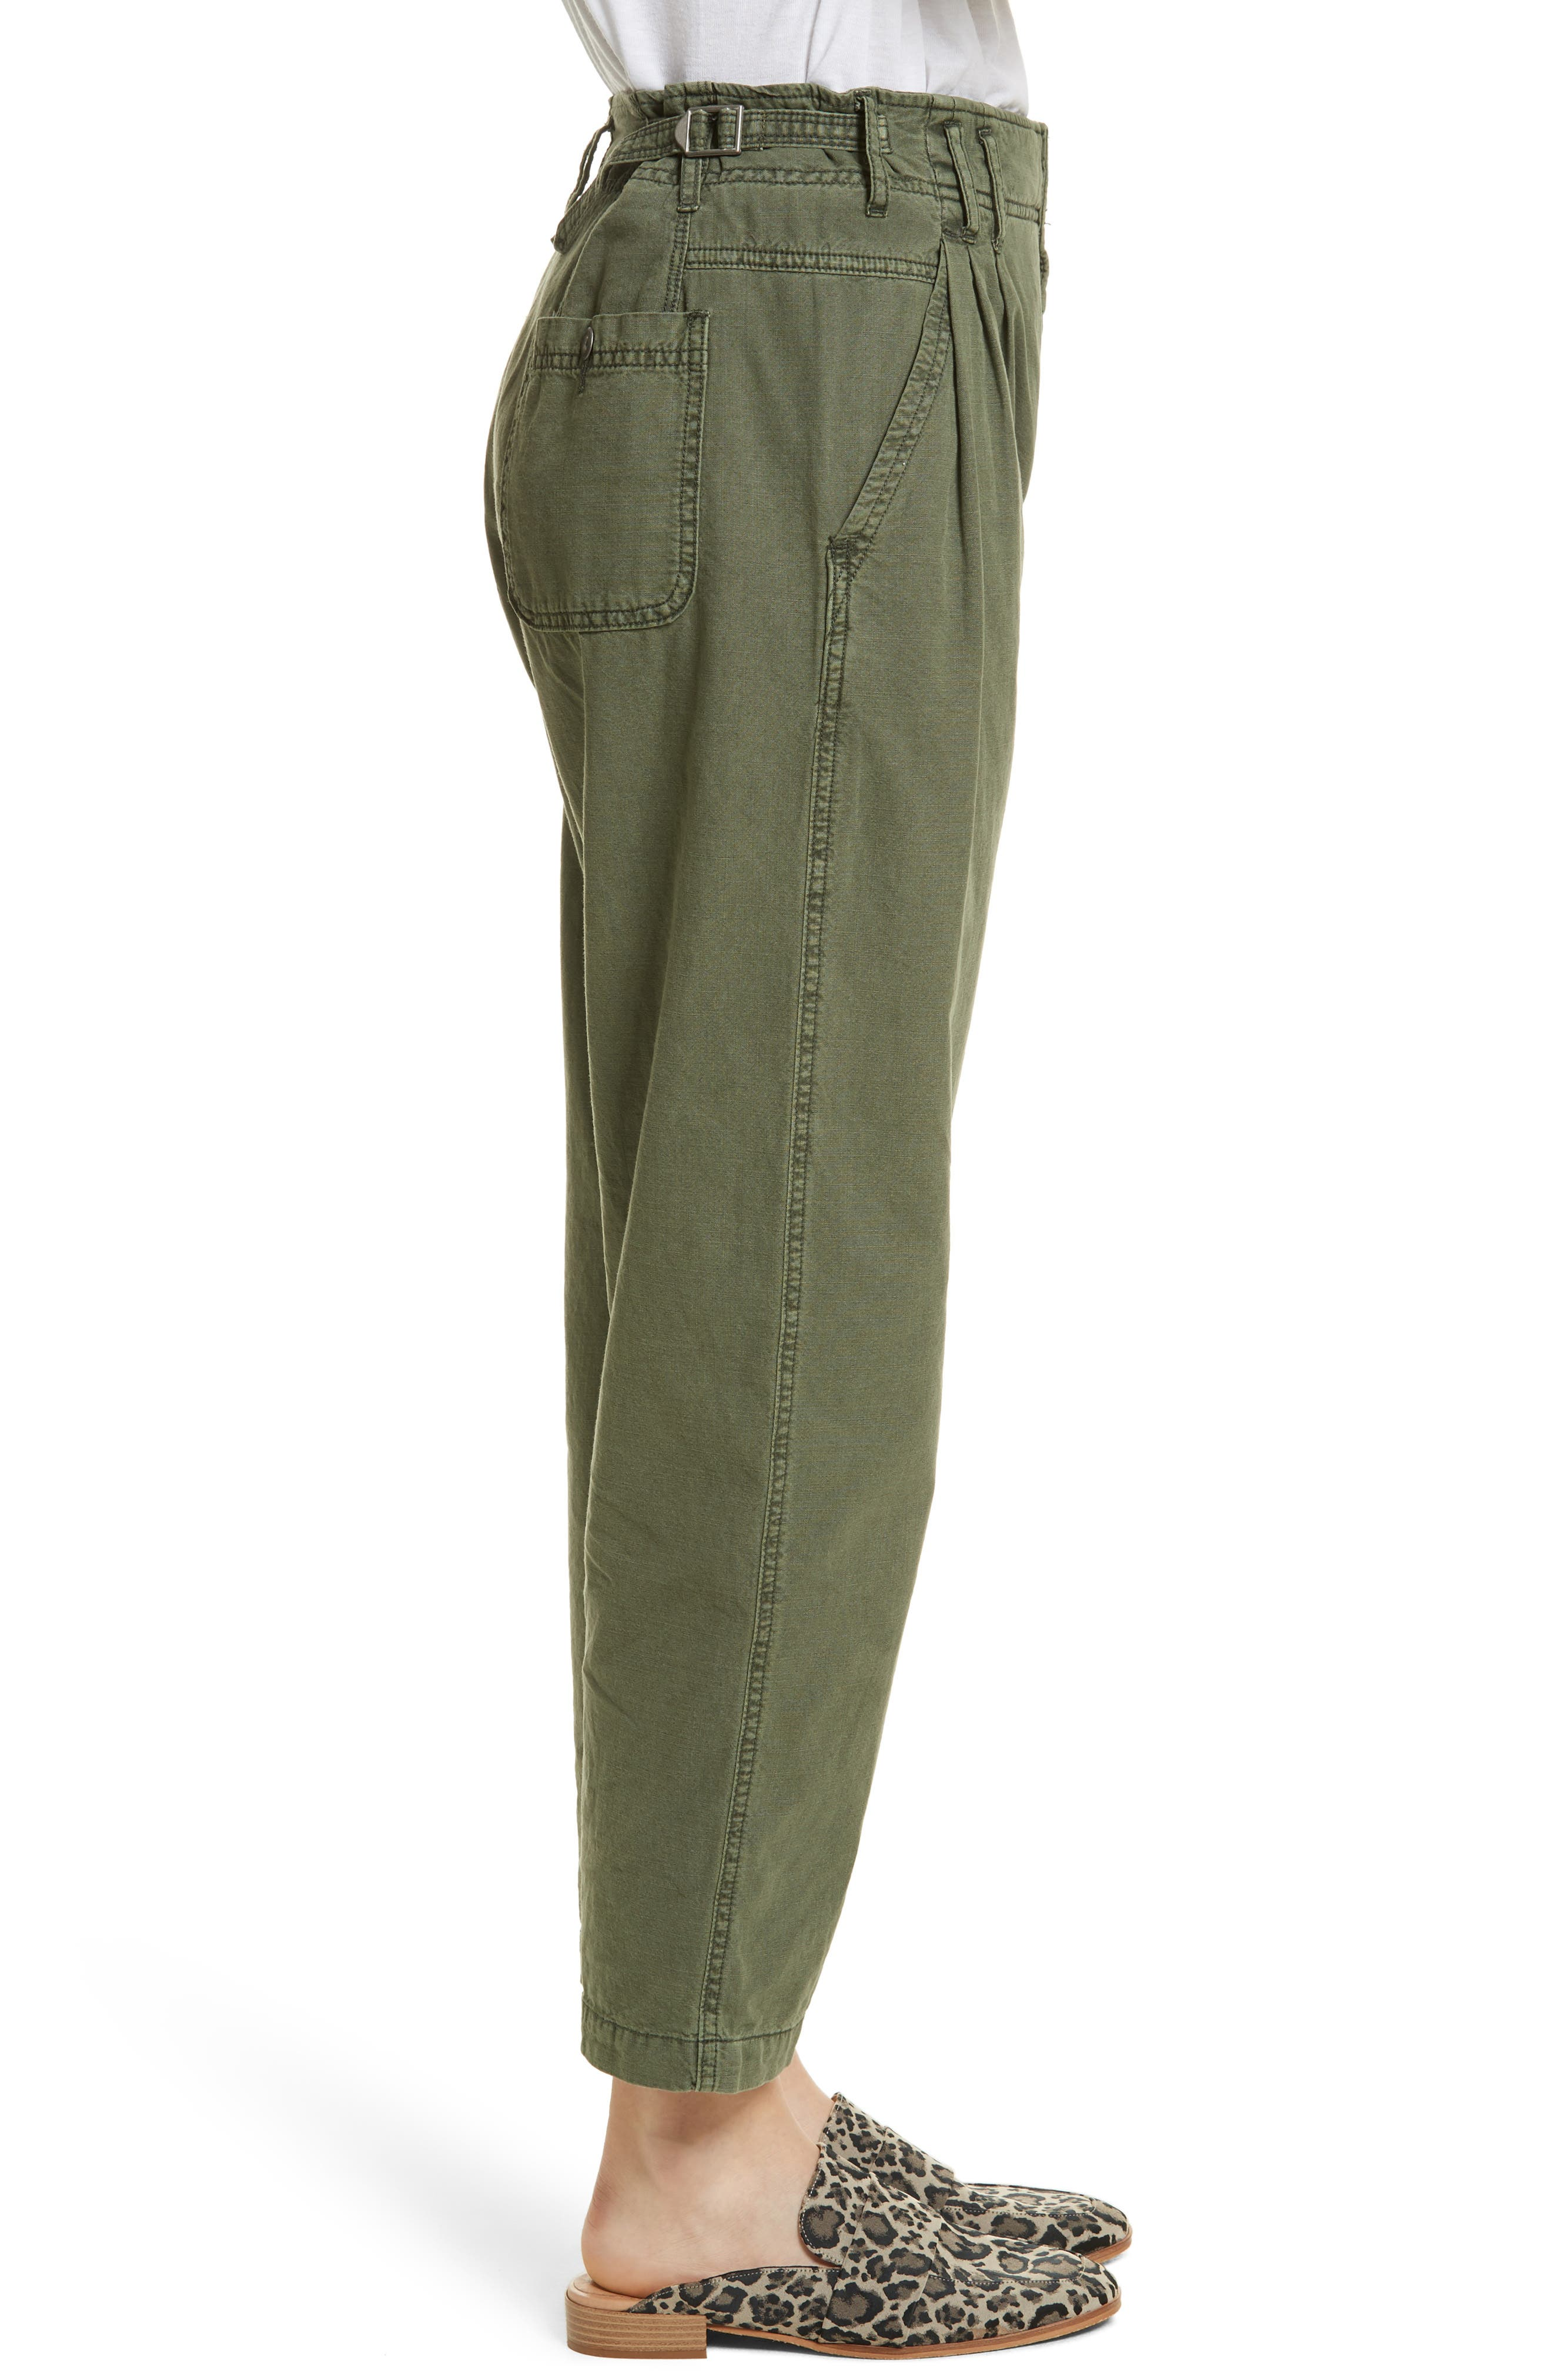 Compass Star Trousers,                             Alternate thumbnail 3, color,                             Slate